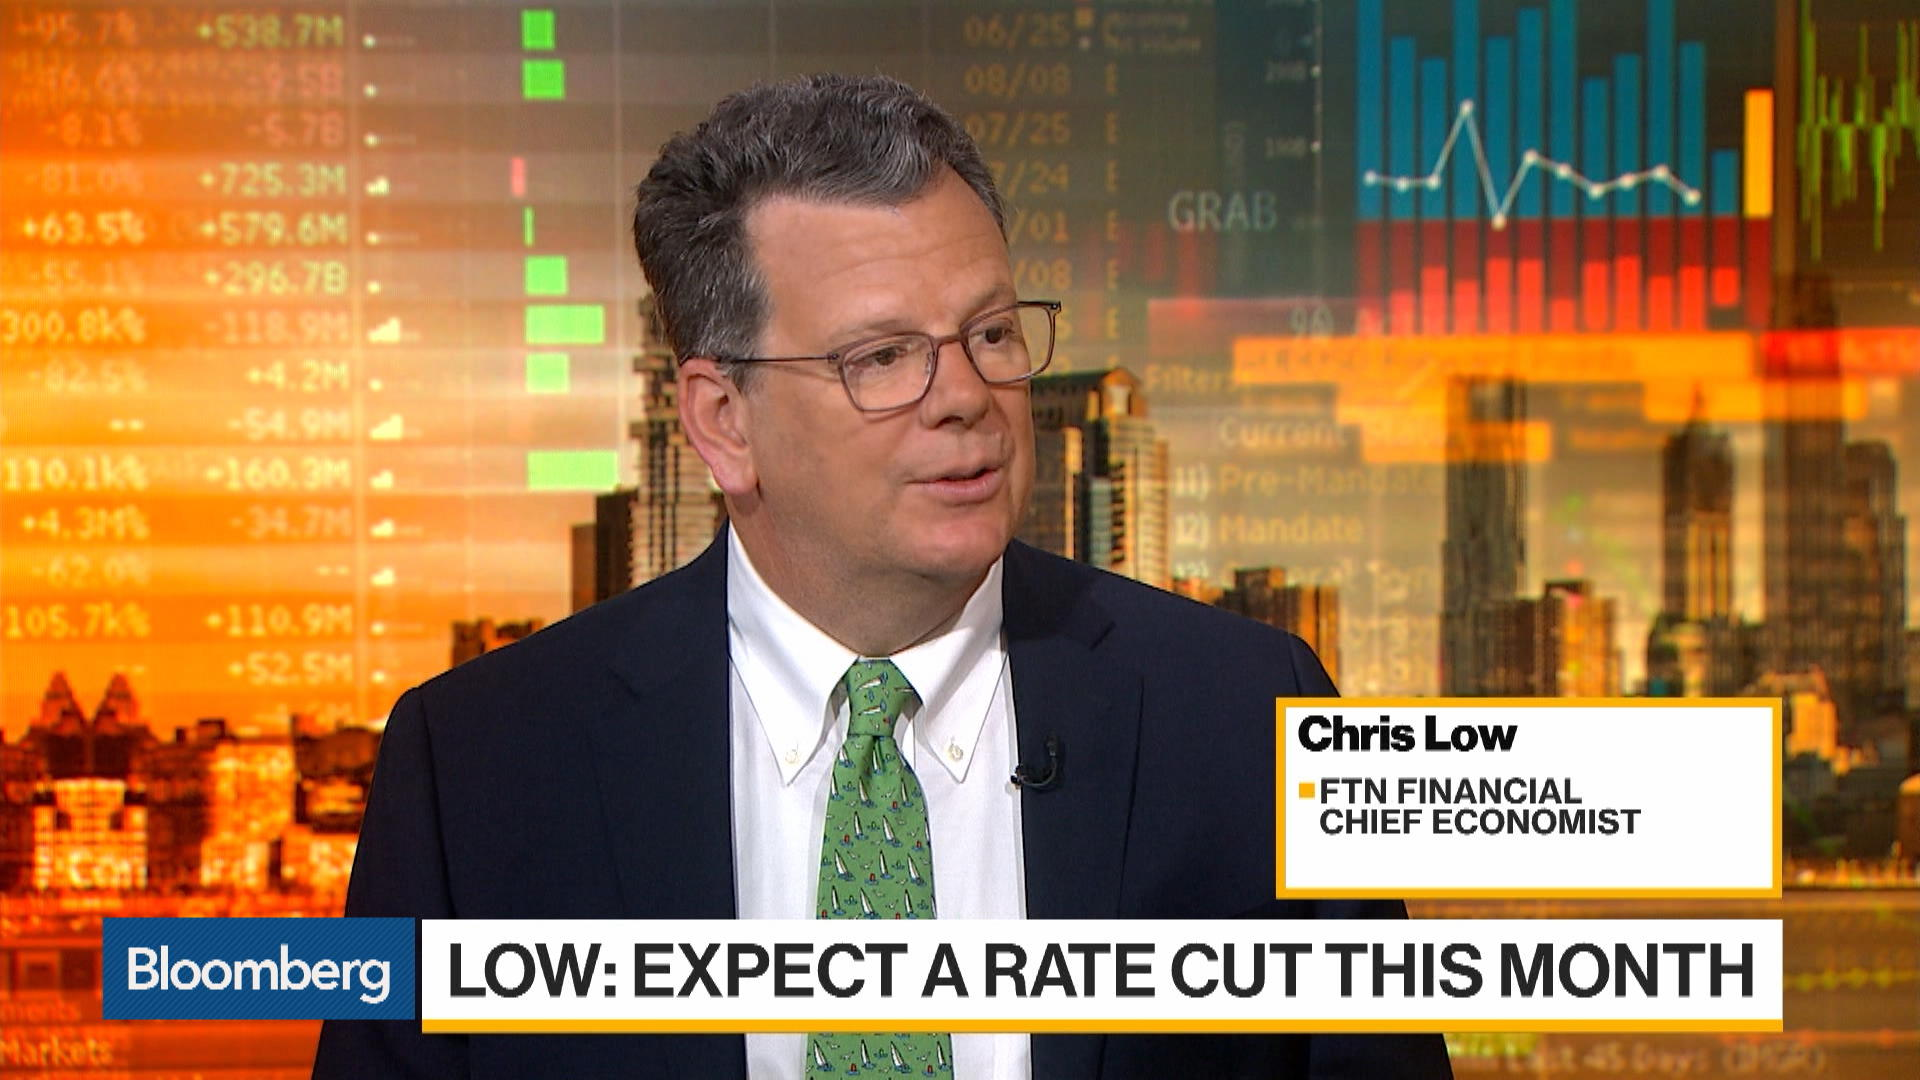 July Rate Cut Makes Sense, Says FTN Financial's Low